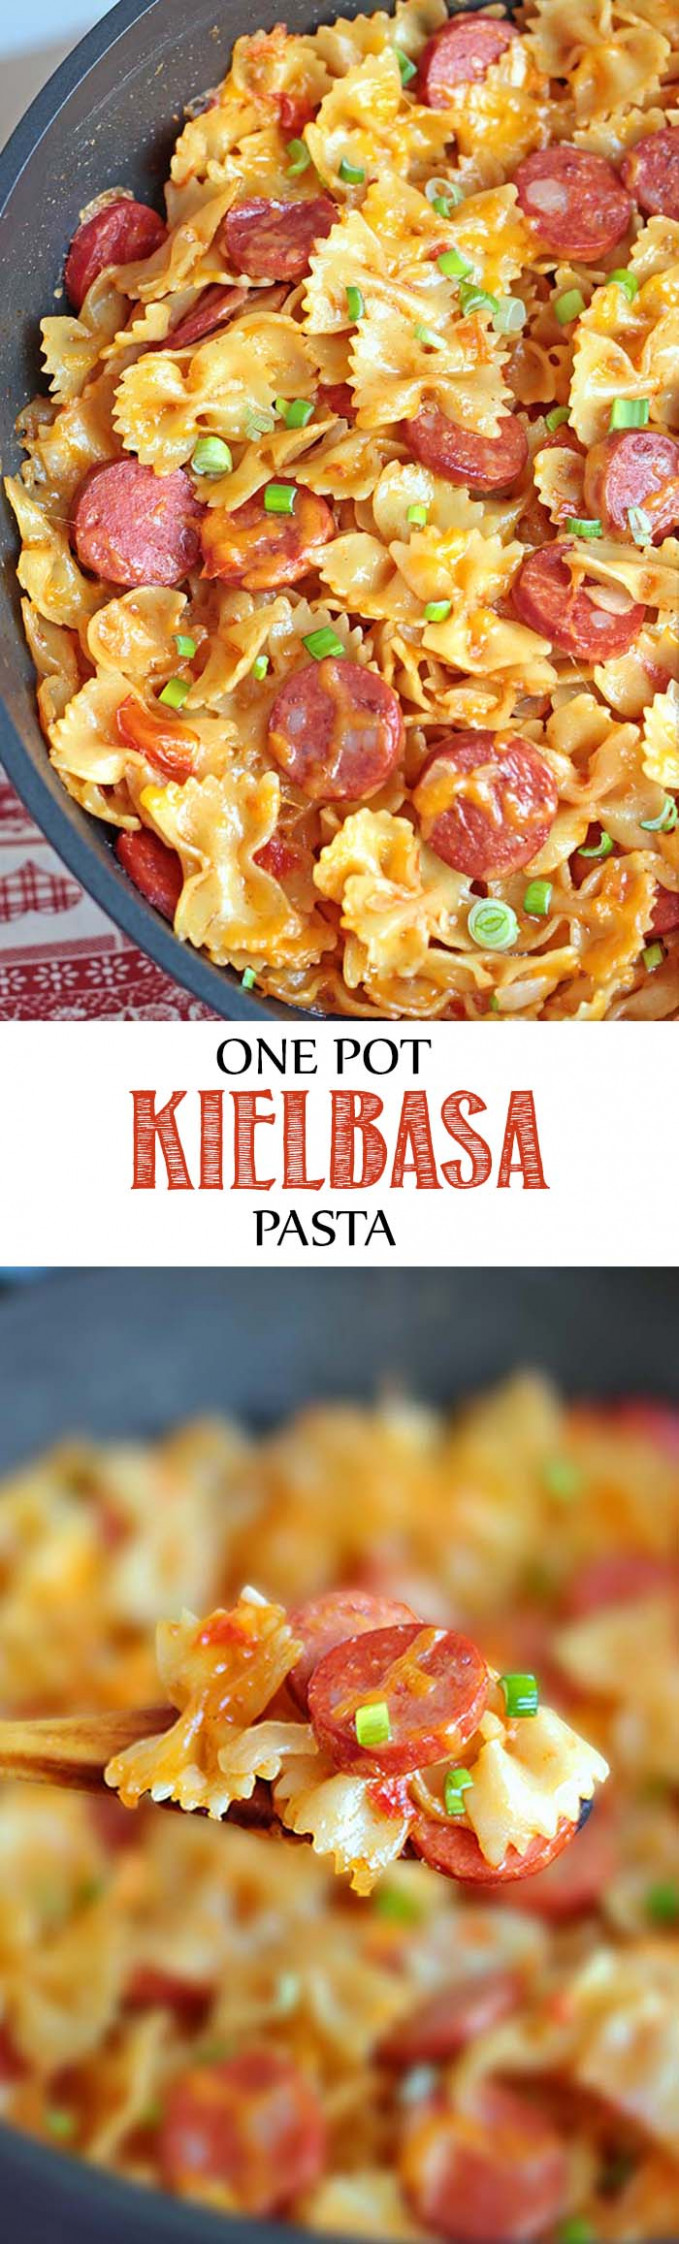 One Pot Kielbasa Pasta - Sugar Apron